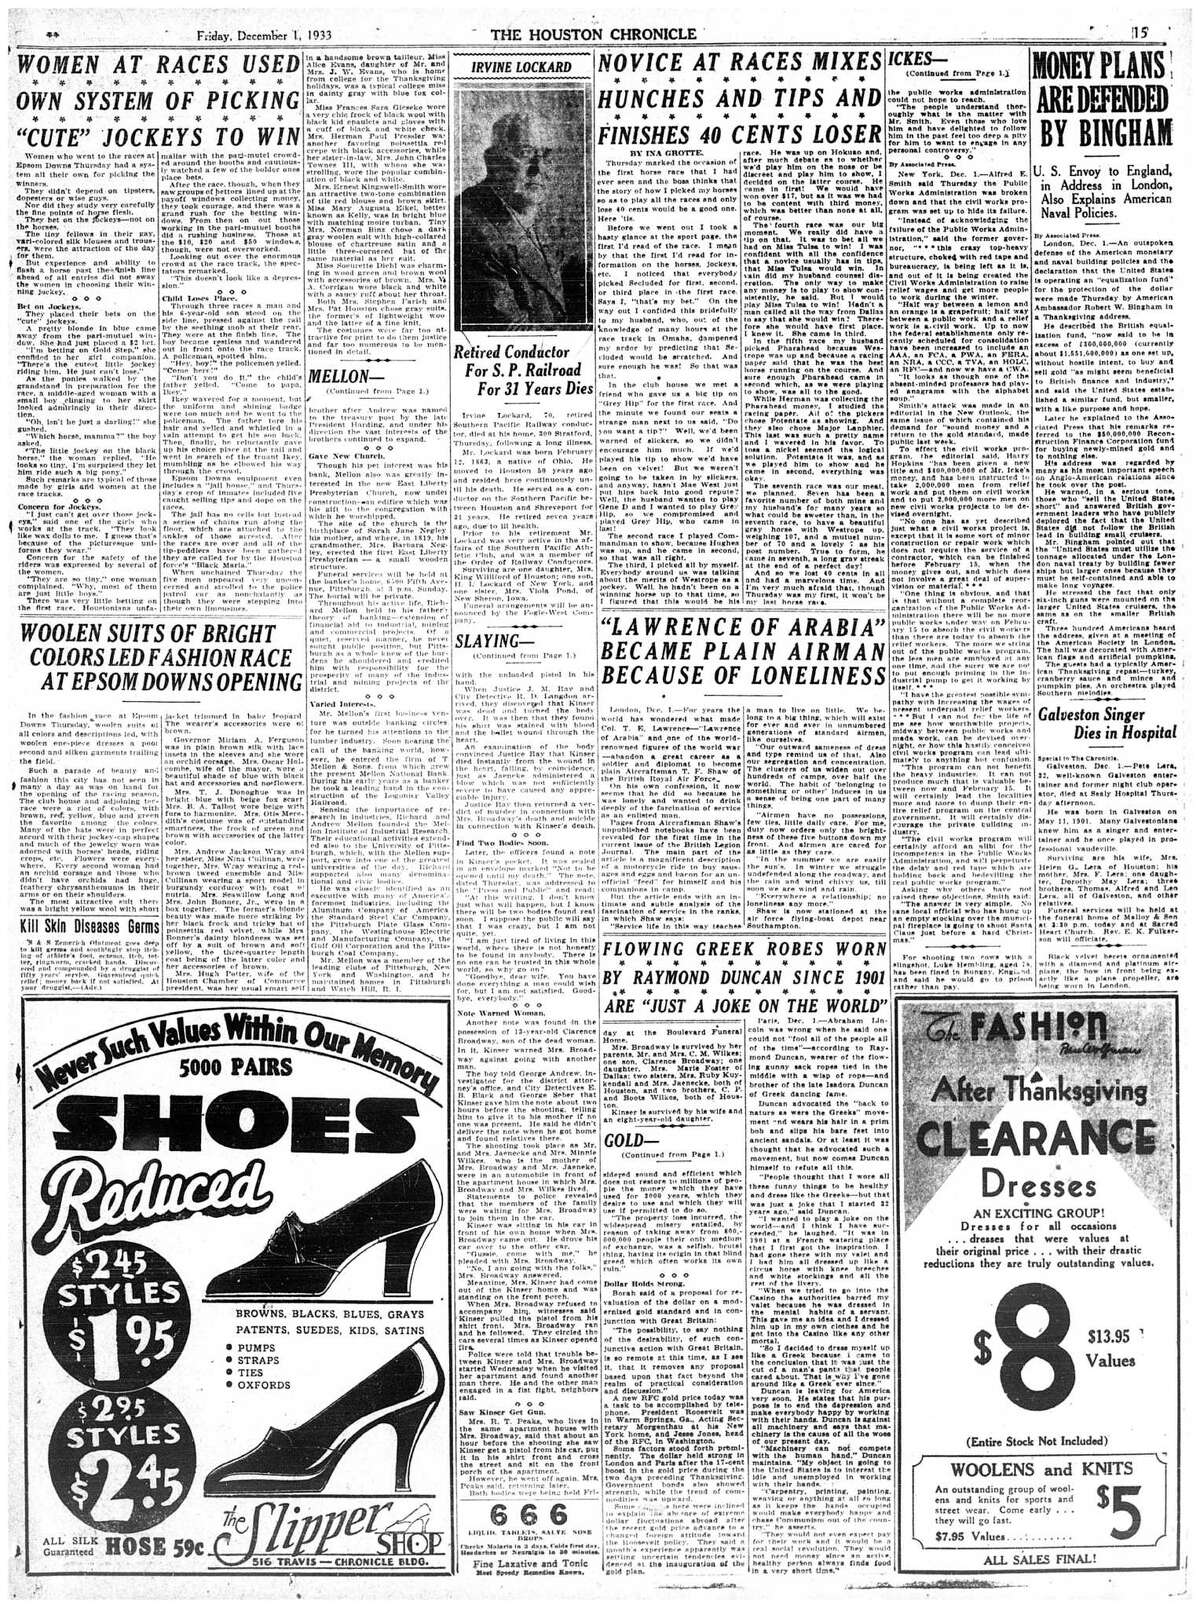 Houston Chronicle inside page. December 1, 1933 - section 1, page 15. Epsom Downs stories:** WOMEN AT RACES USED ON SYSTEM OF PICKING